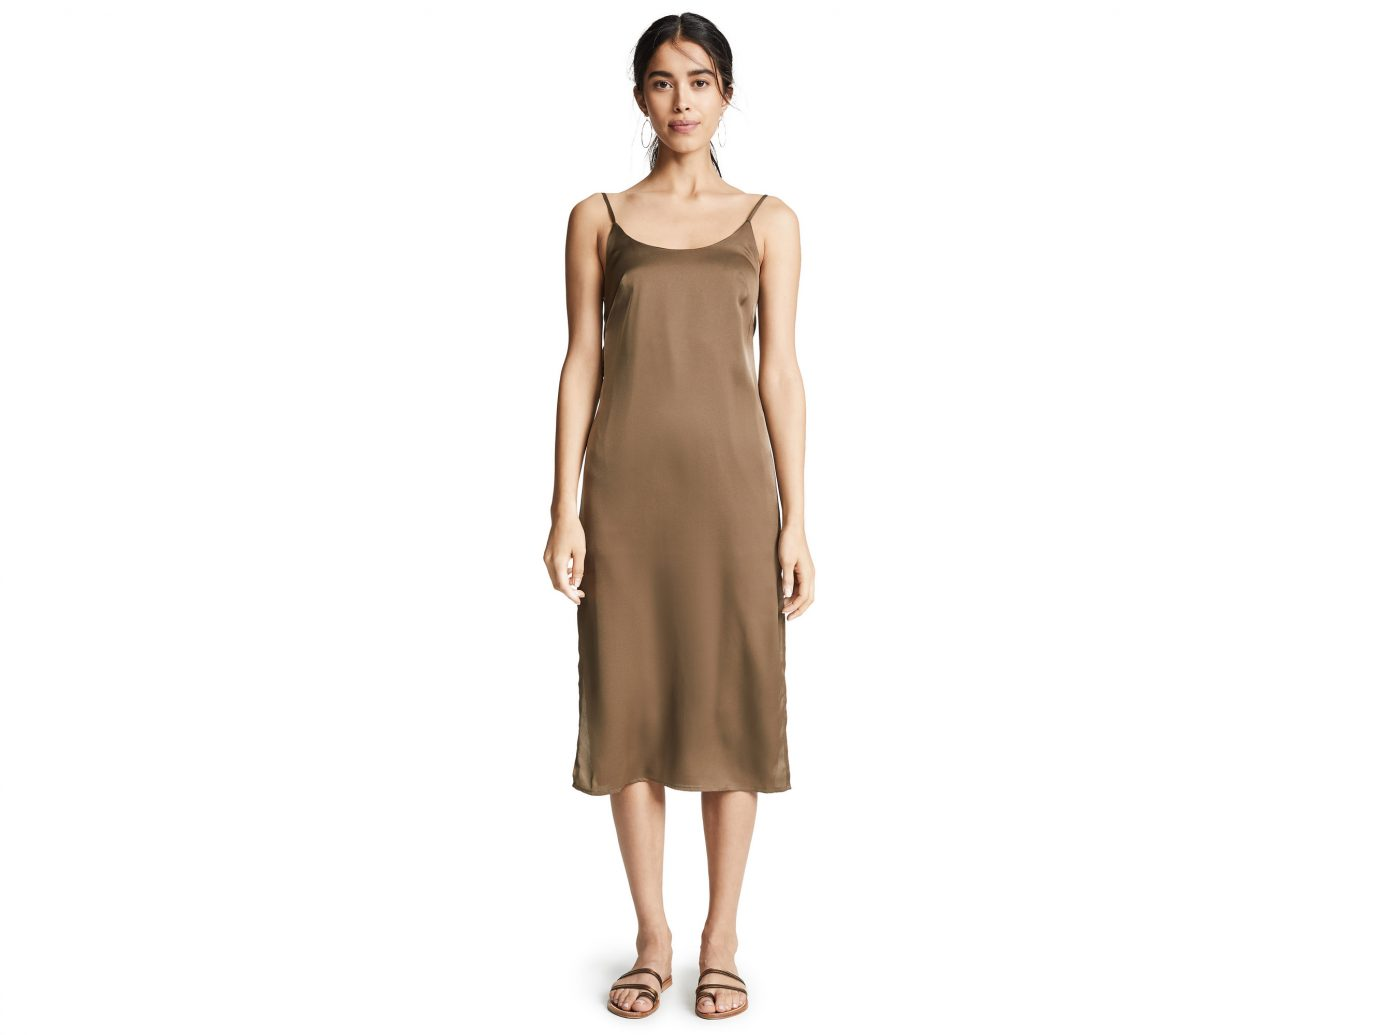 LeRumi Kinsey Slip Dress